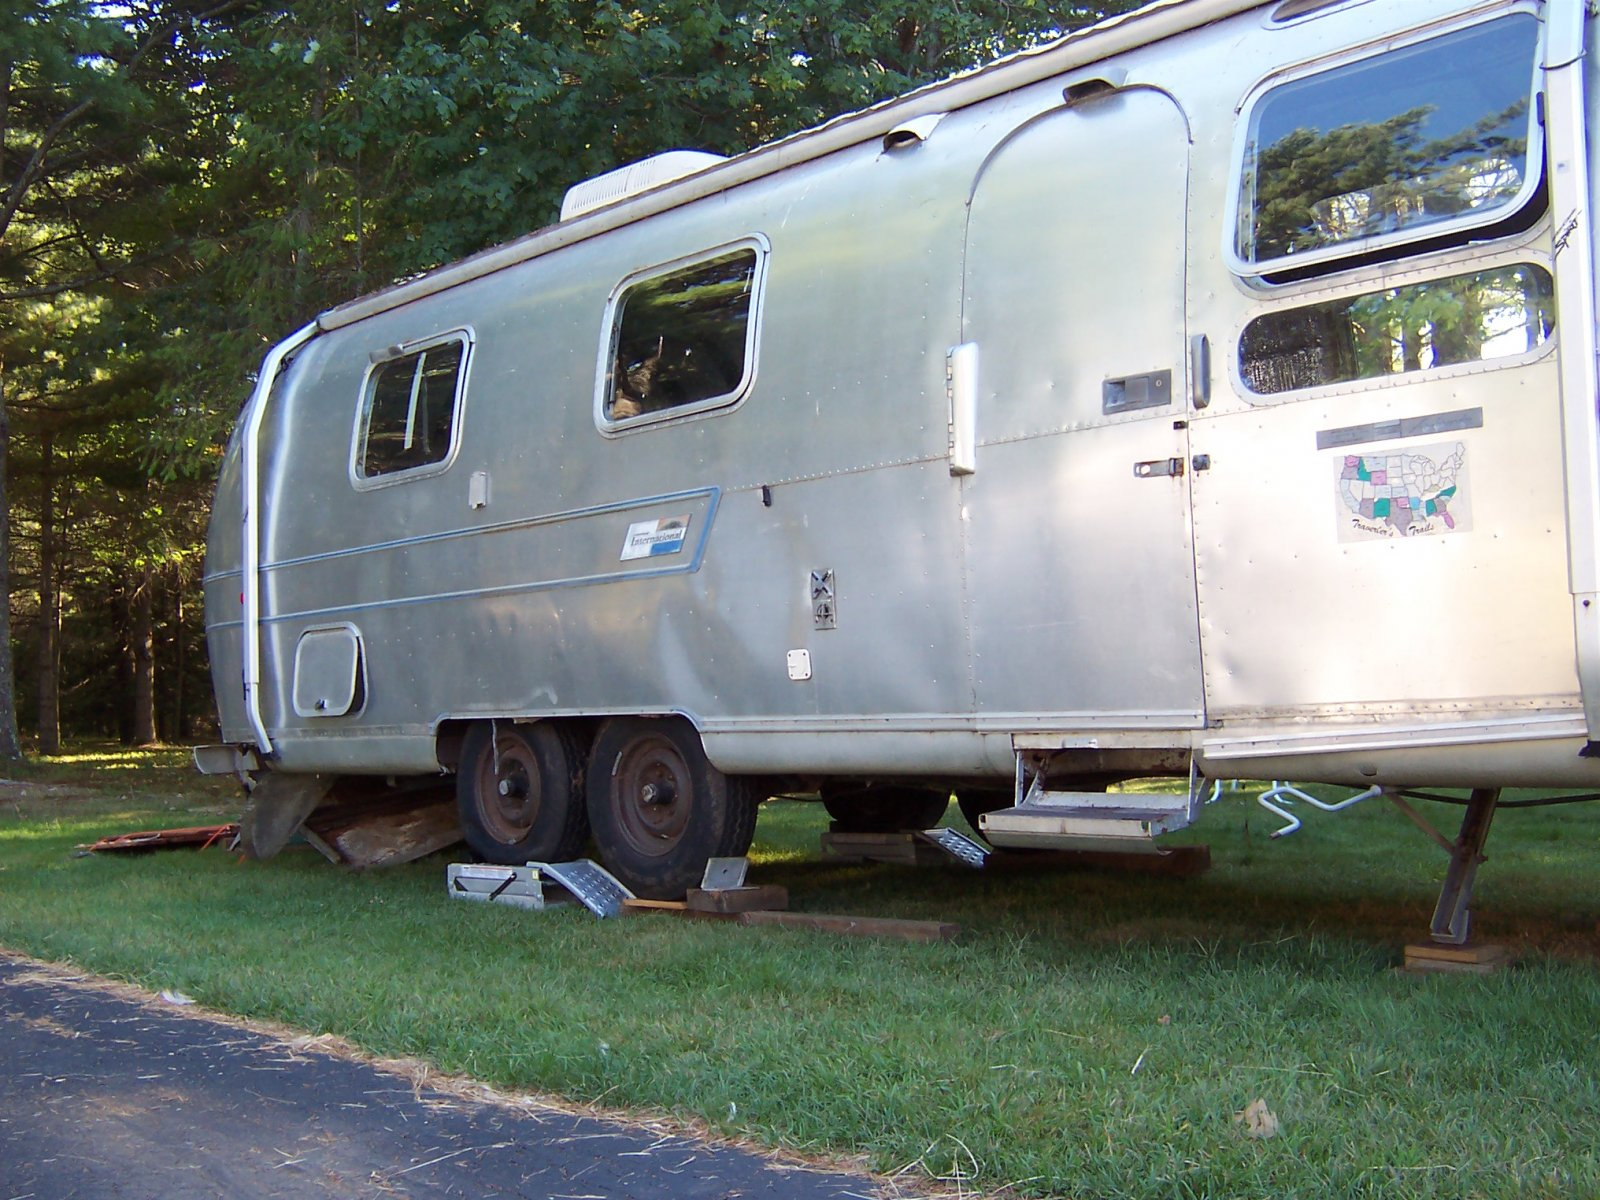 Click image for larger version  Name:Summer 2010 Airstream 001.jpg Views:99 Size:379.6 KB ID:109673